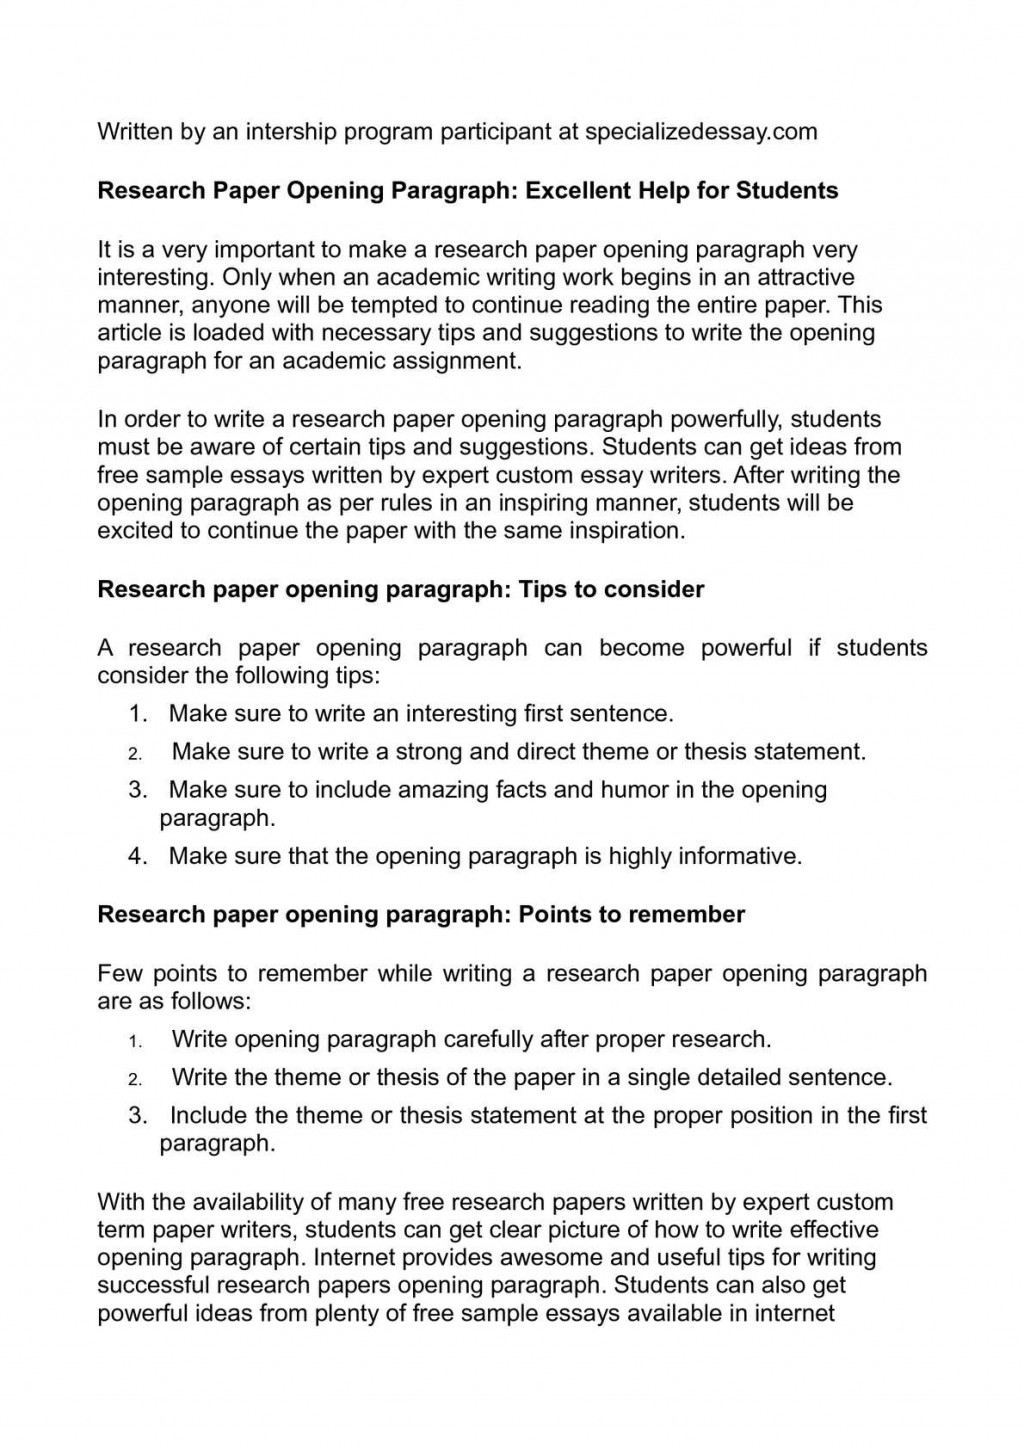 003 P1 Opening Statements For Essays Essay Unusual Starting Lines General Statement Examples Large